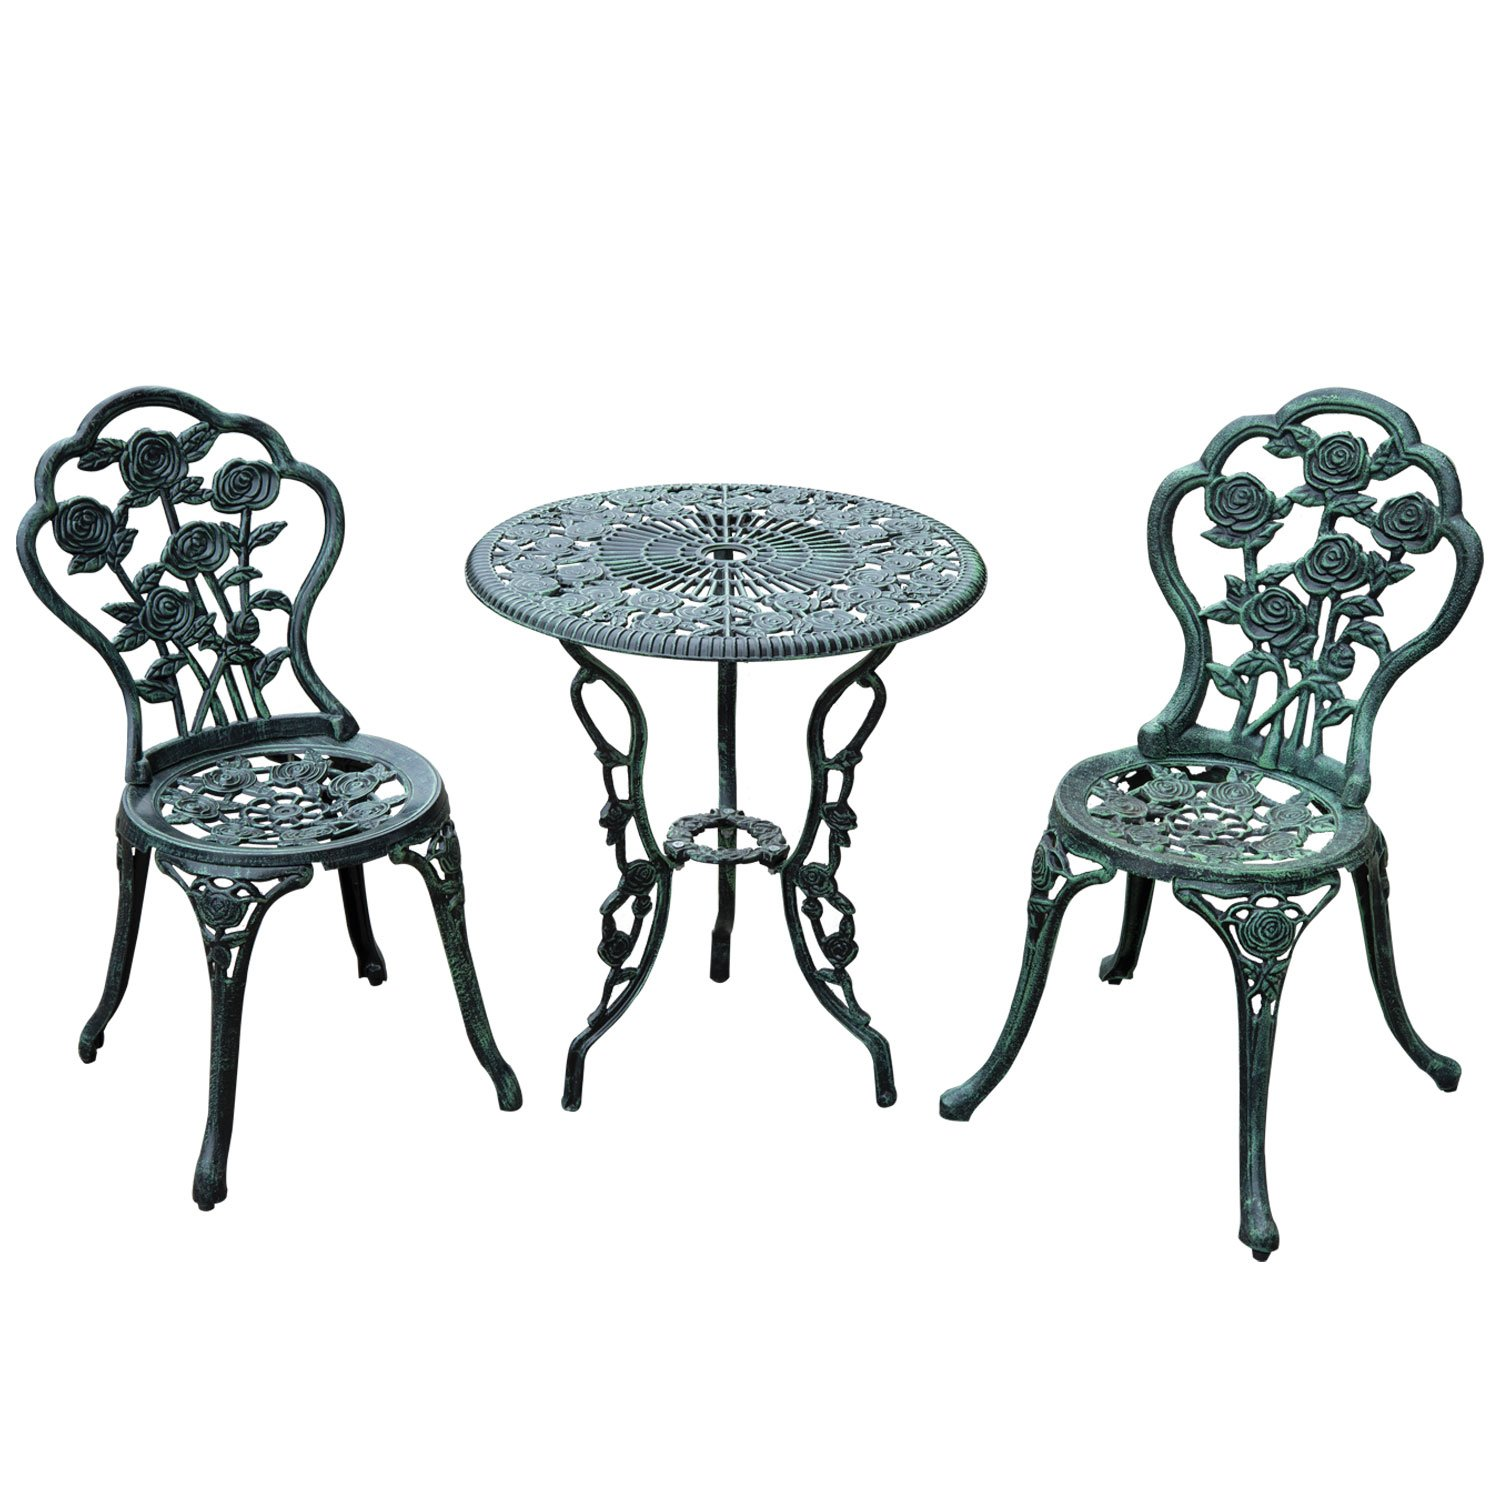 Amazon Outsunny 3 Piece Outdoor Cast Iron Patio Furniture